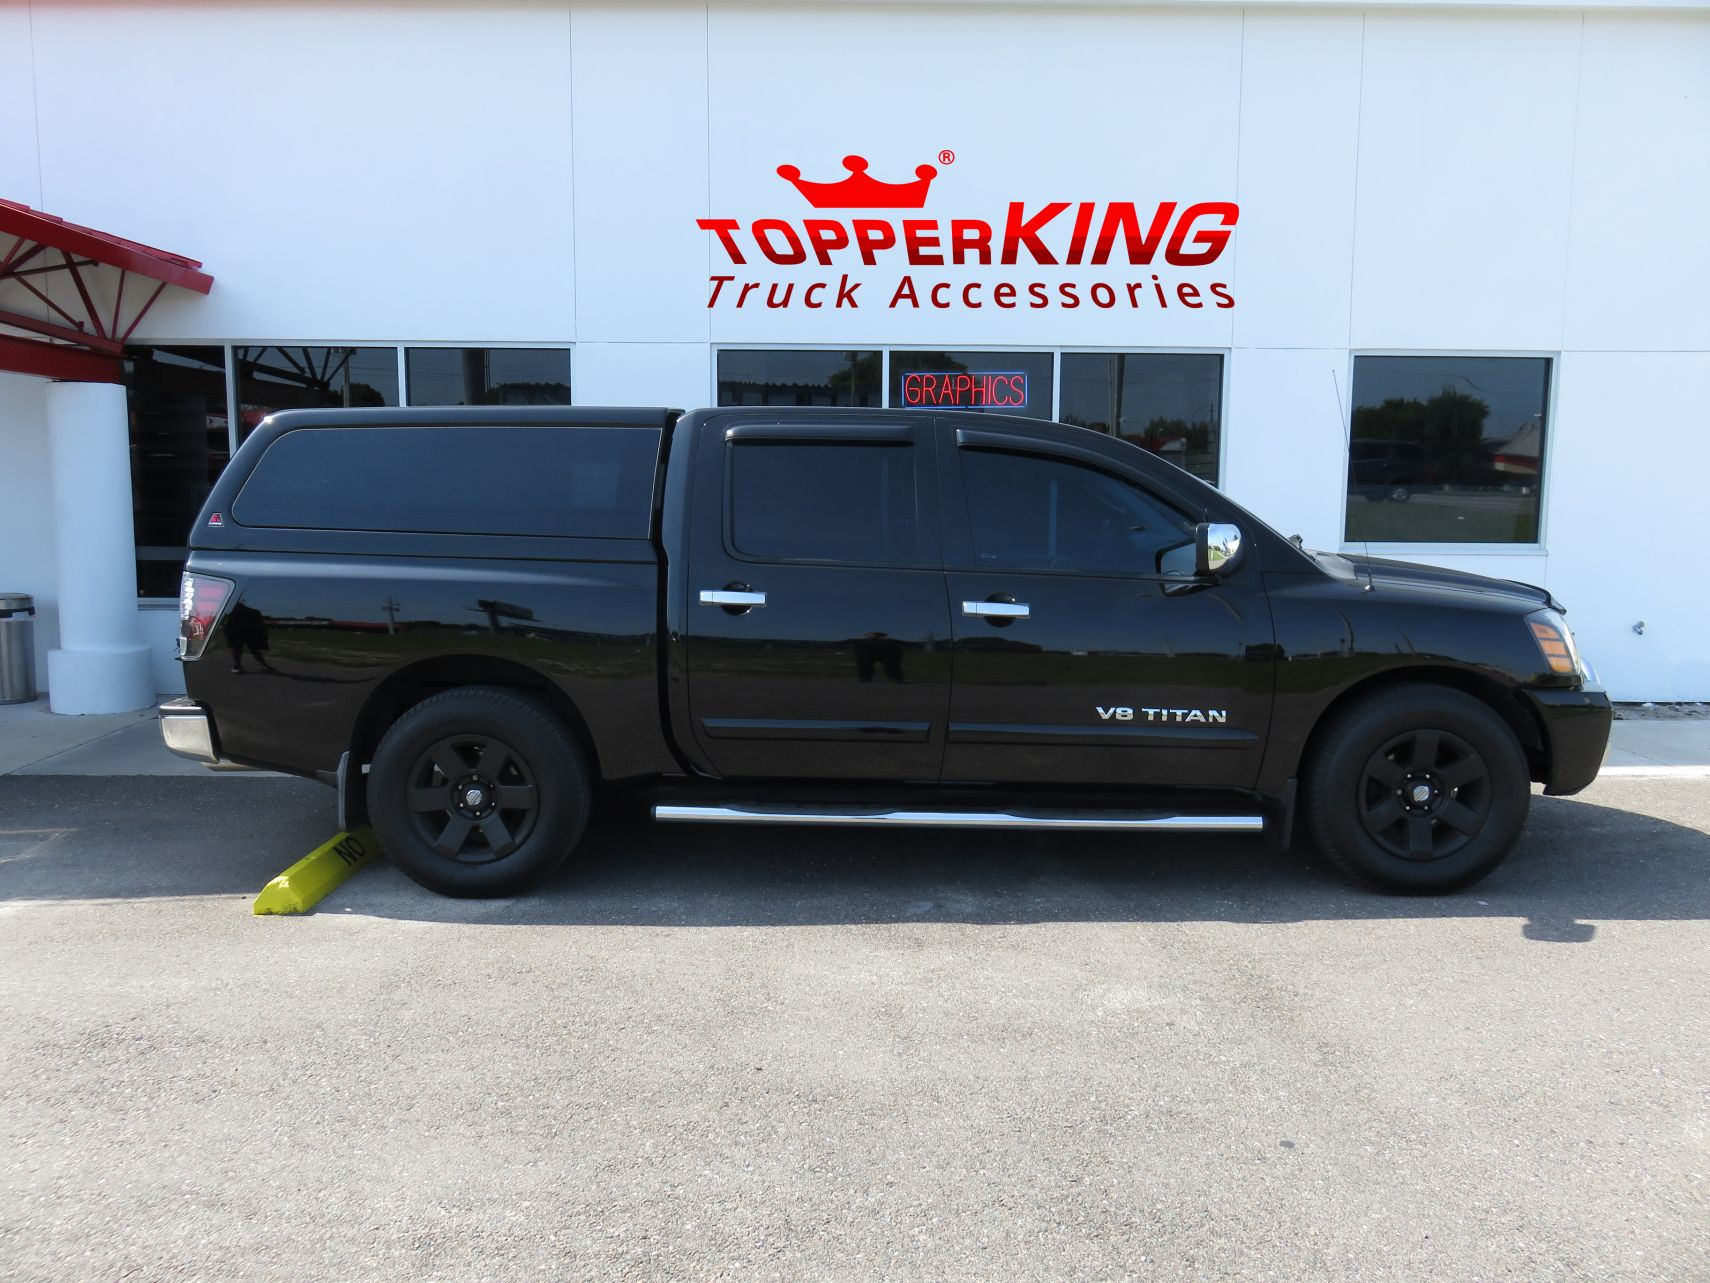 2005 Black and Chrome Nissan Titan Looks New Again - TopperKING : TopperKING | Providing all of ...